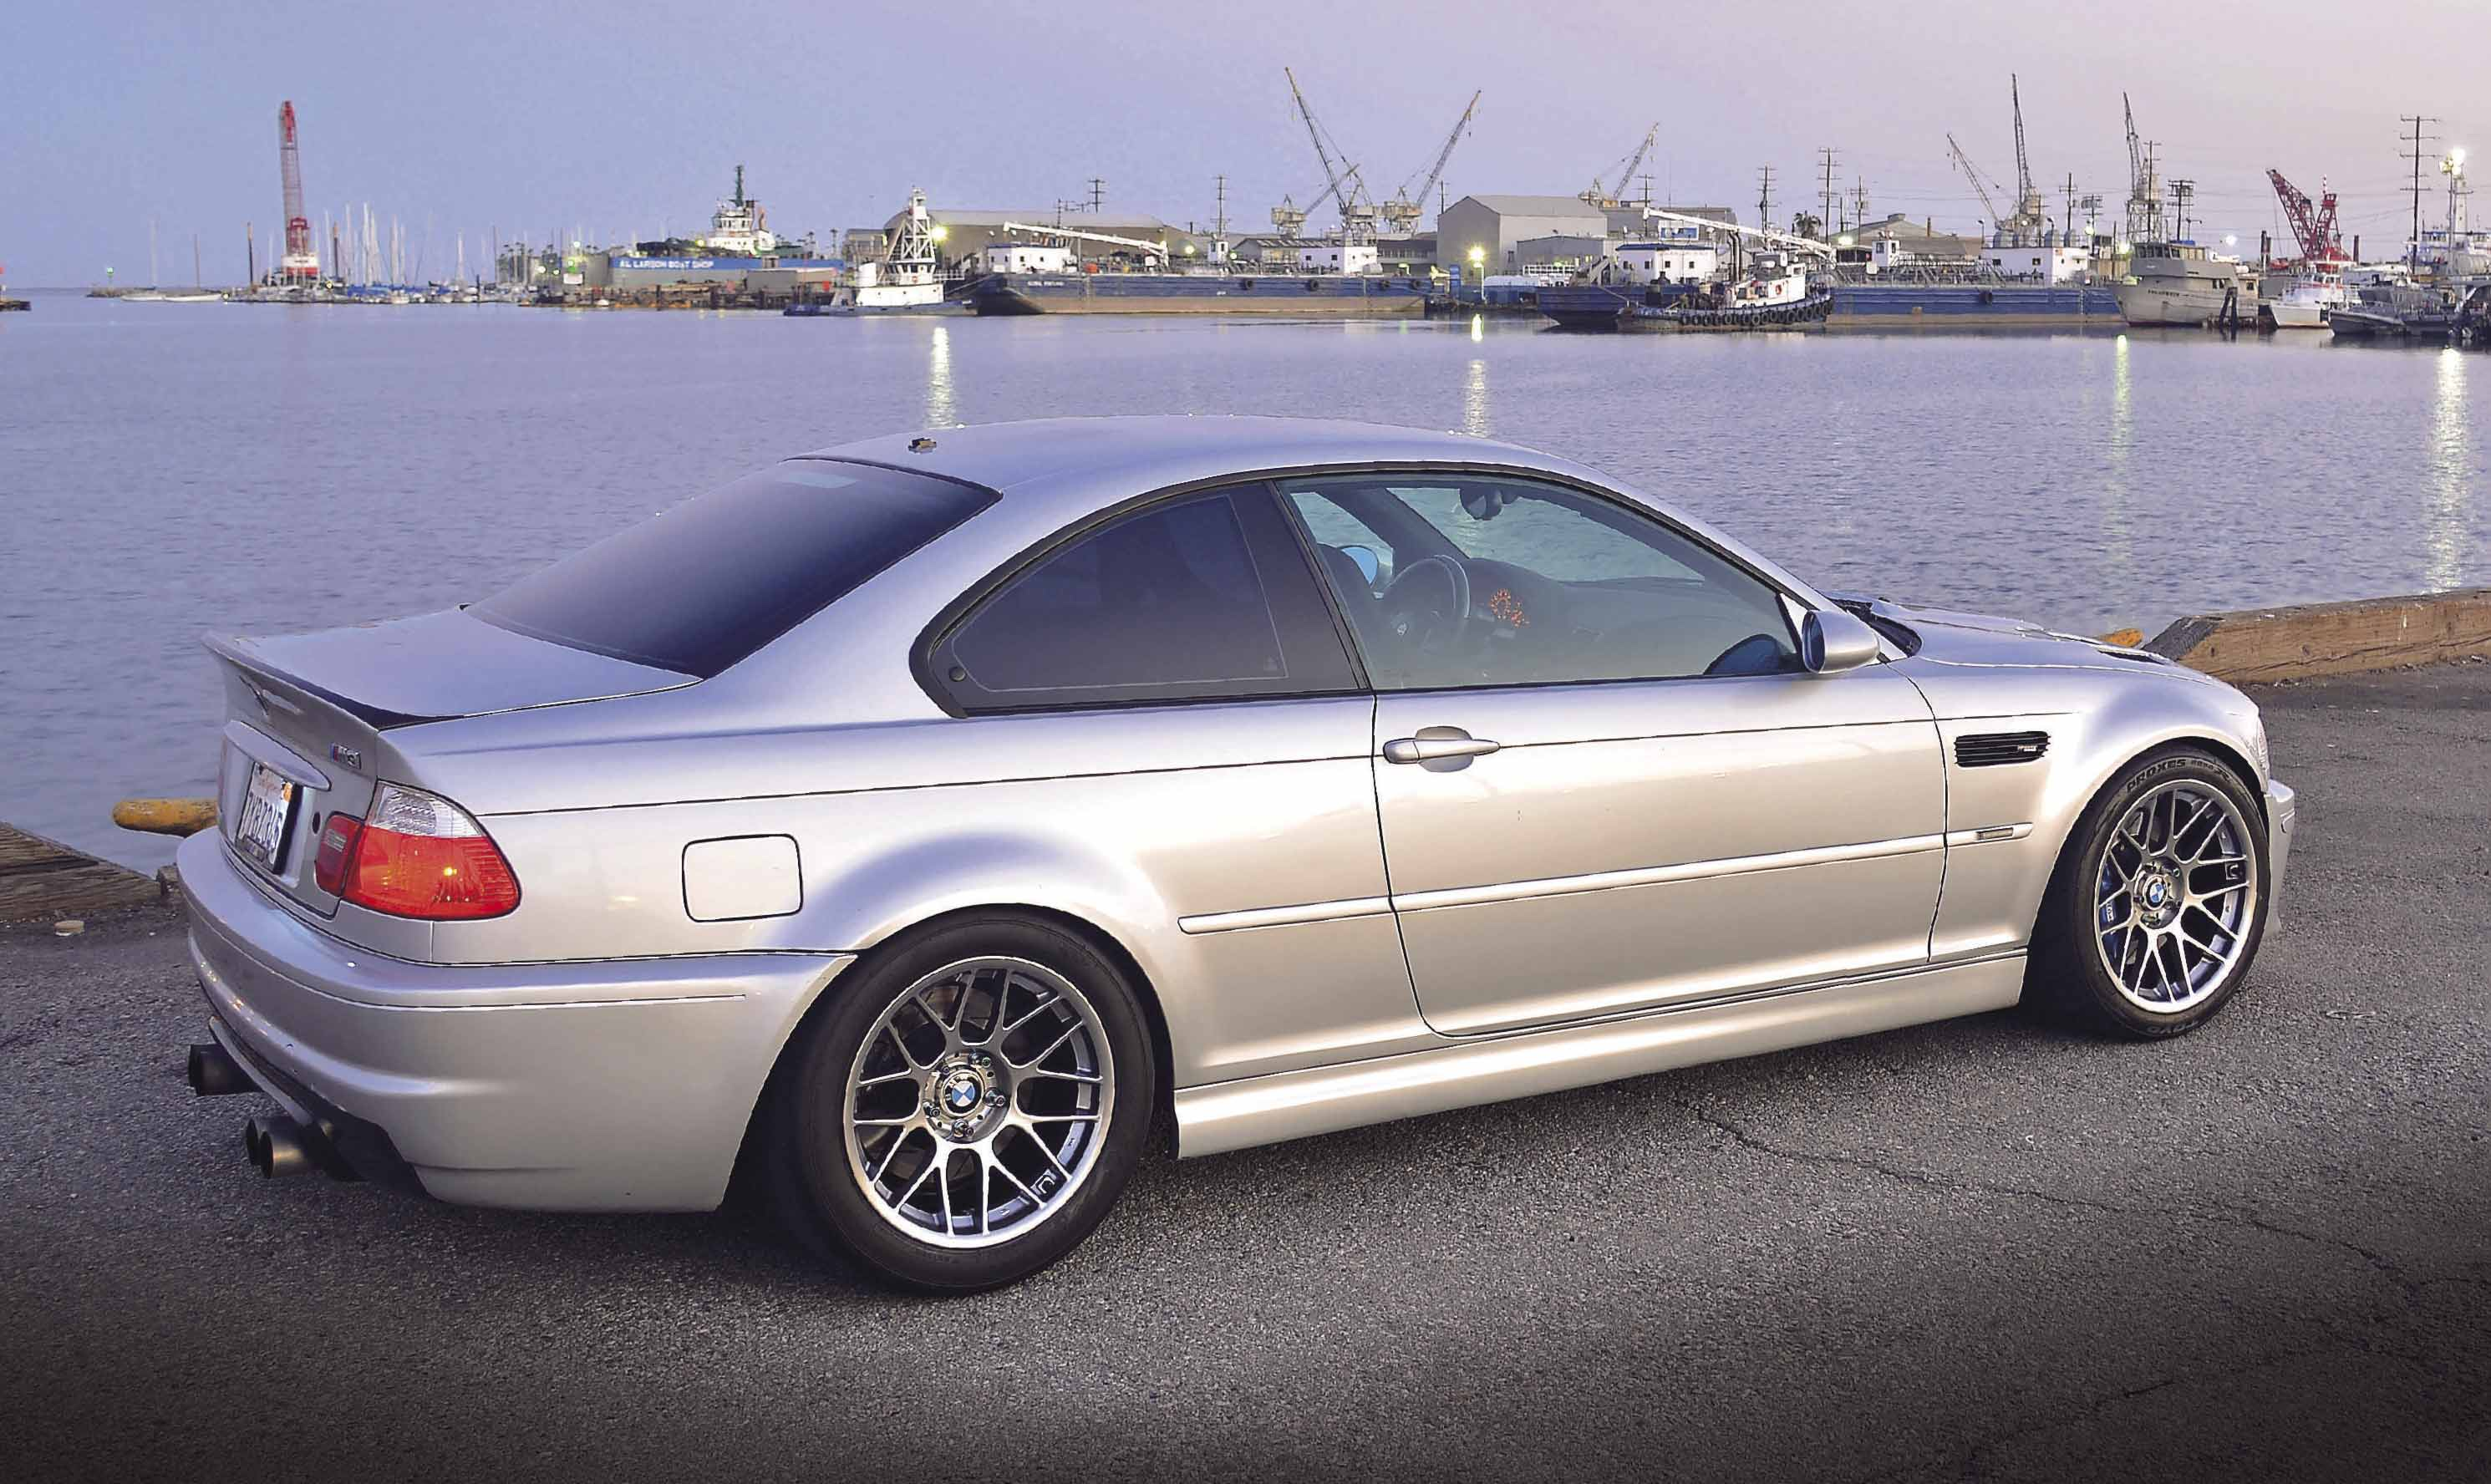 680whp Turbo S54 Bmw M3 E46 Drive My Blogs Drive